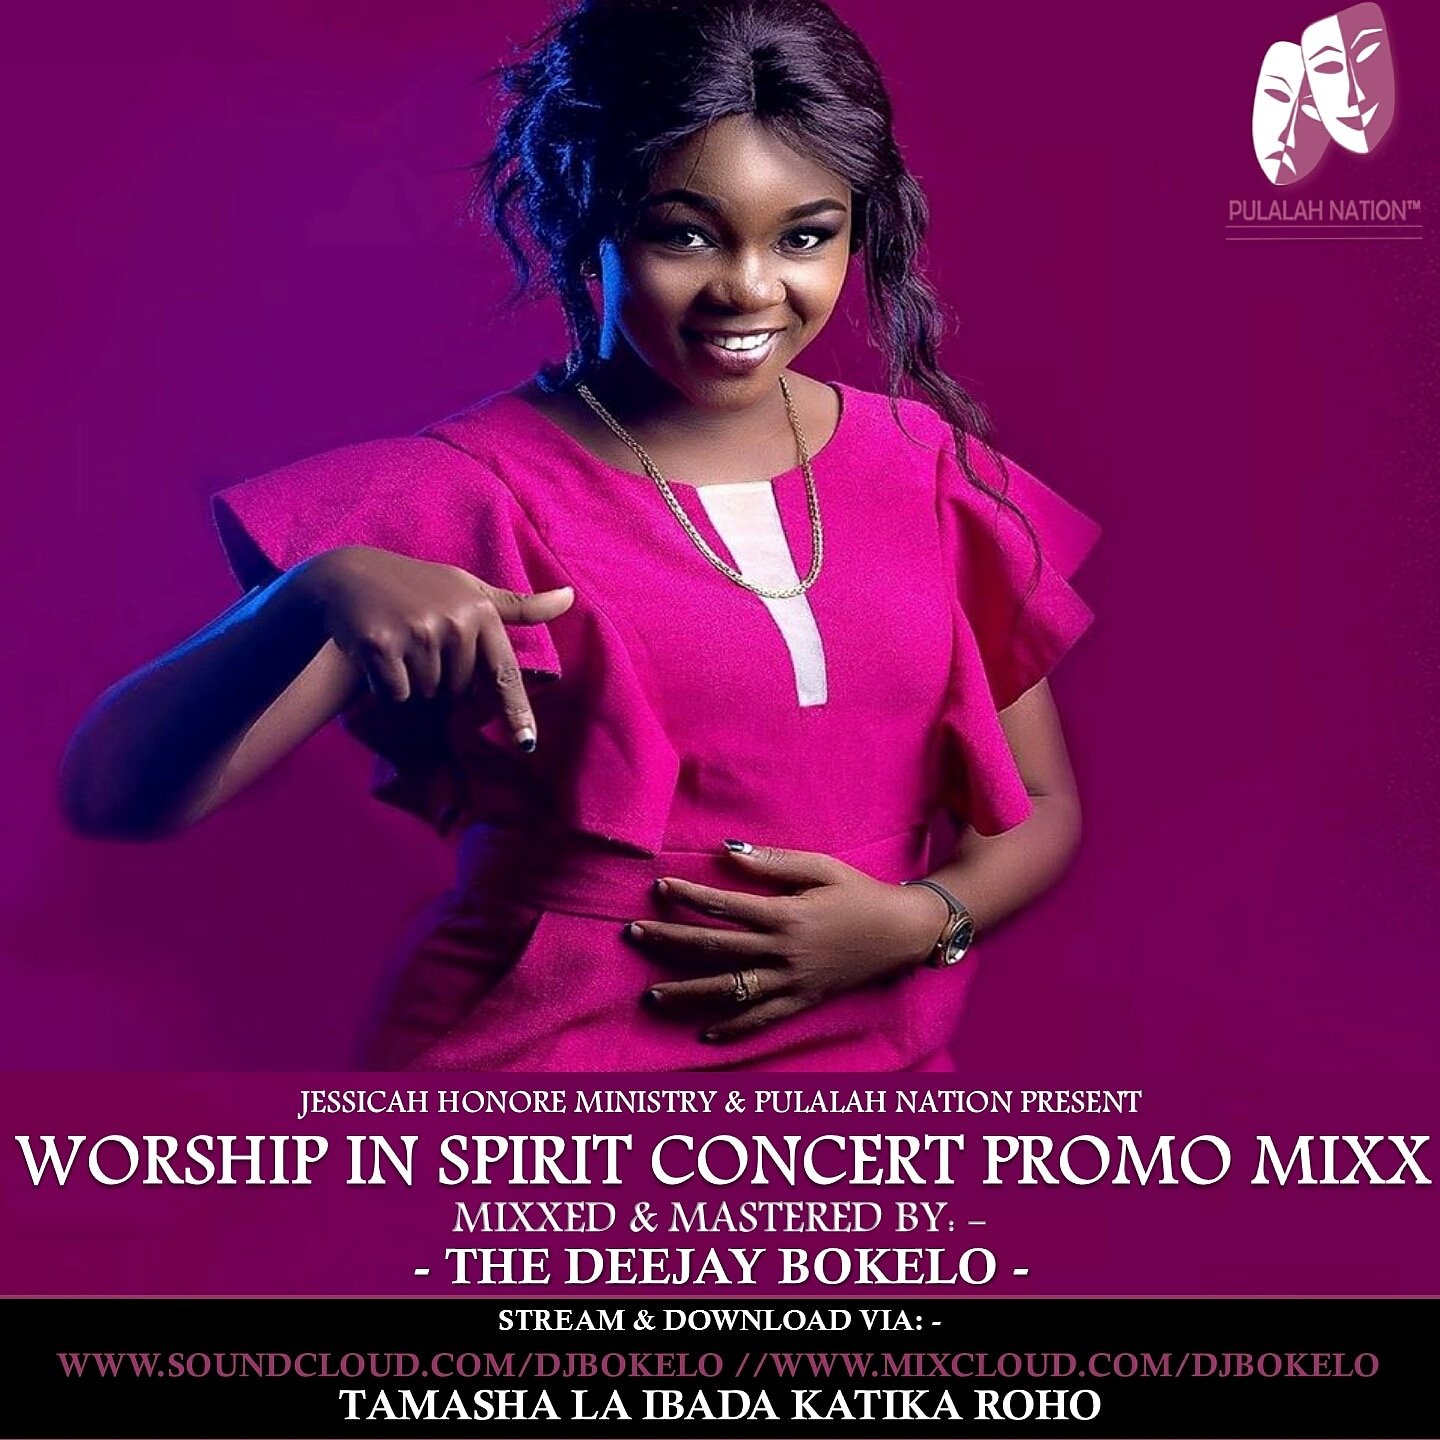 Mixtape | Dj Bokelo – Worship in Spirit Concert Promo Mix